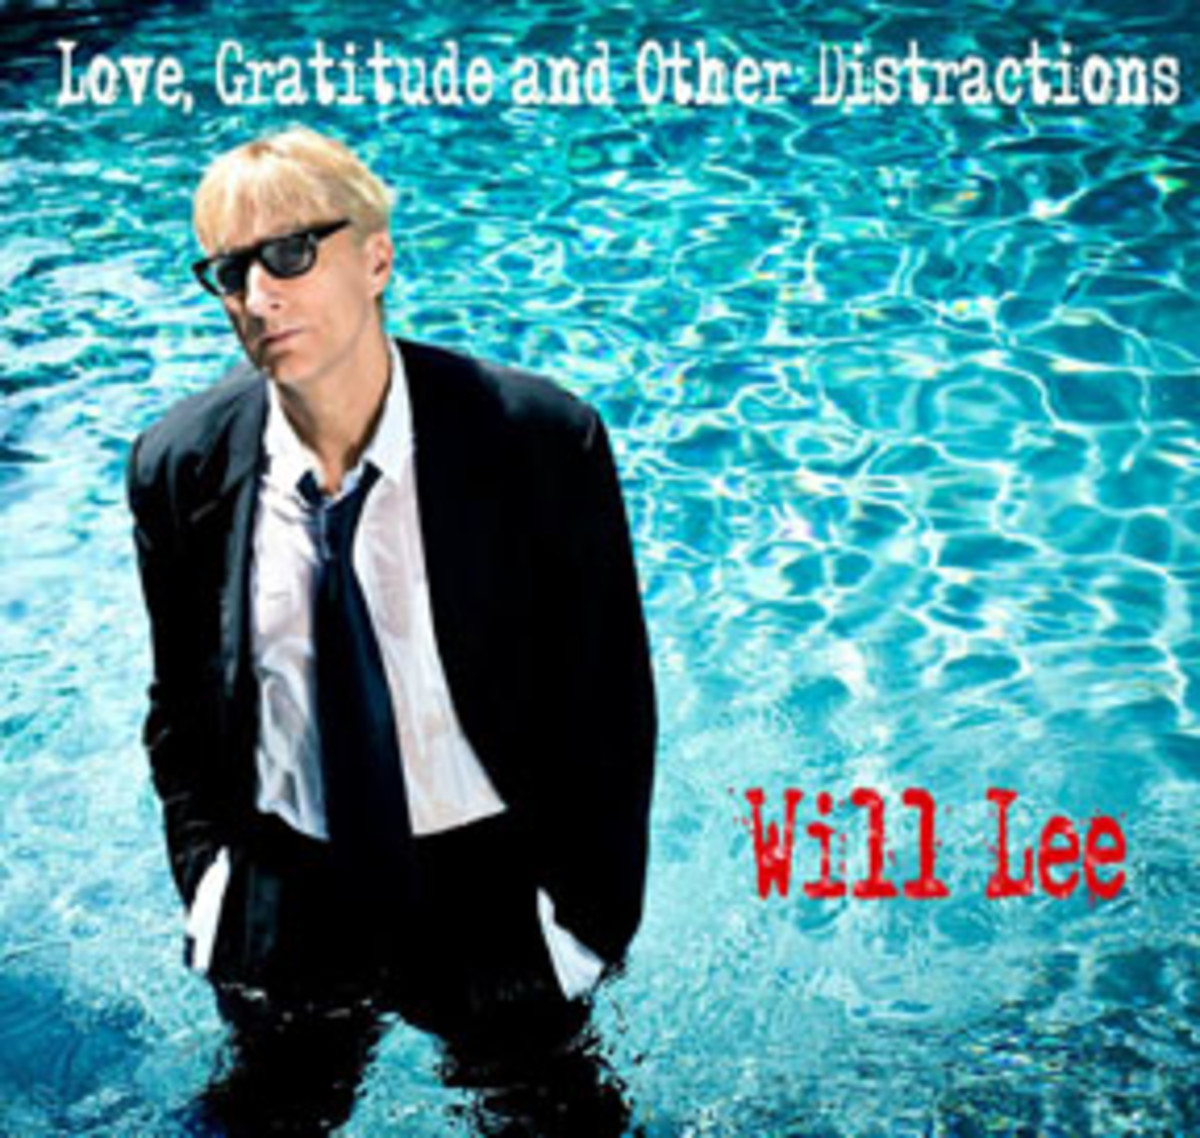 Will Lee Love Gratitude and Other Distractions